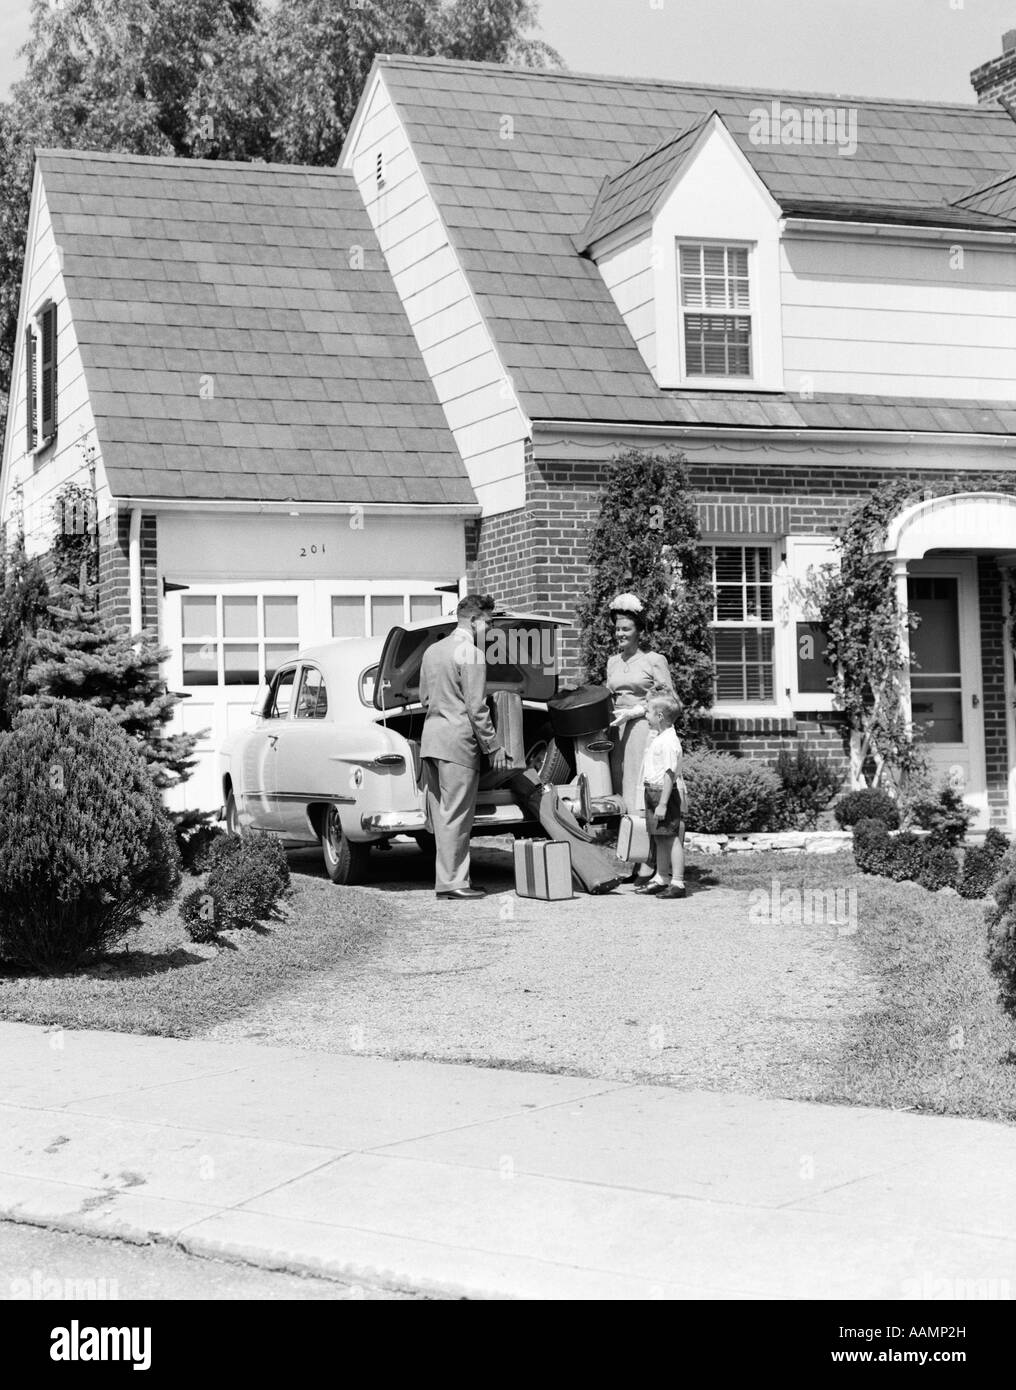 1950S House Gorgeous 1950S Mother & 2 Sons In Front Of House Shoveling Deep Snow From Review